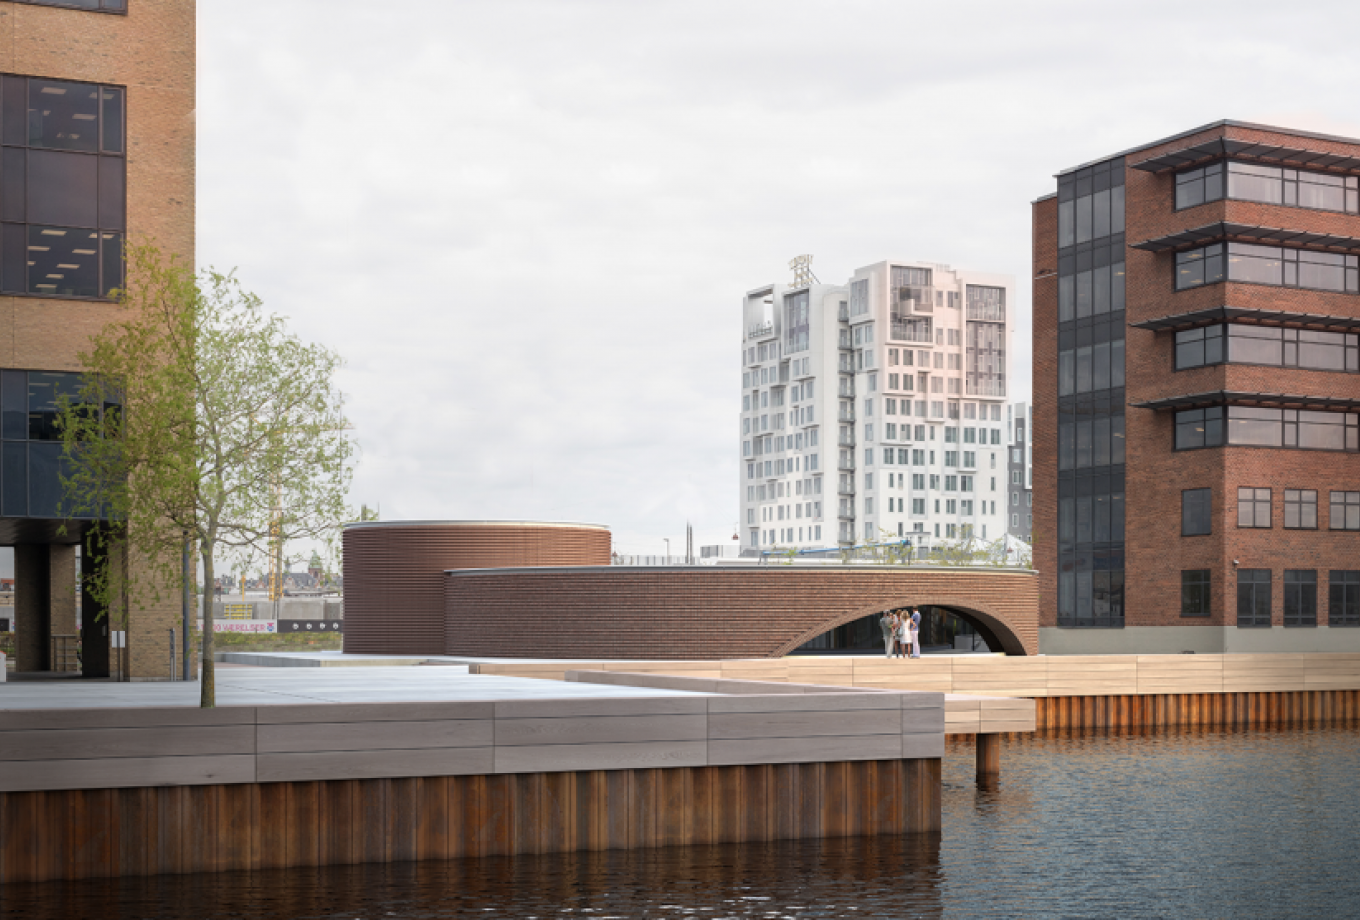 gottlieb_paludan_architects_pumpestation_kalvebod_brygge-a_1